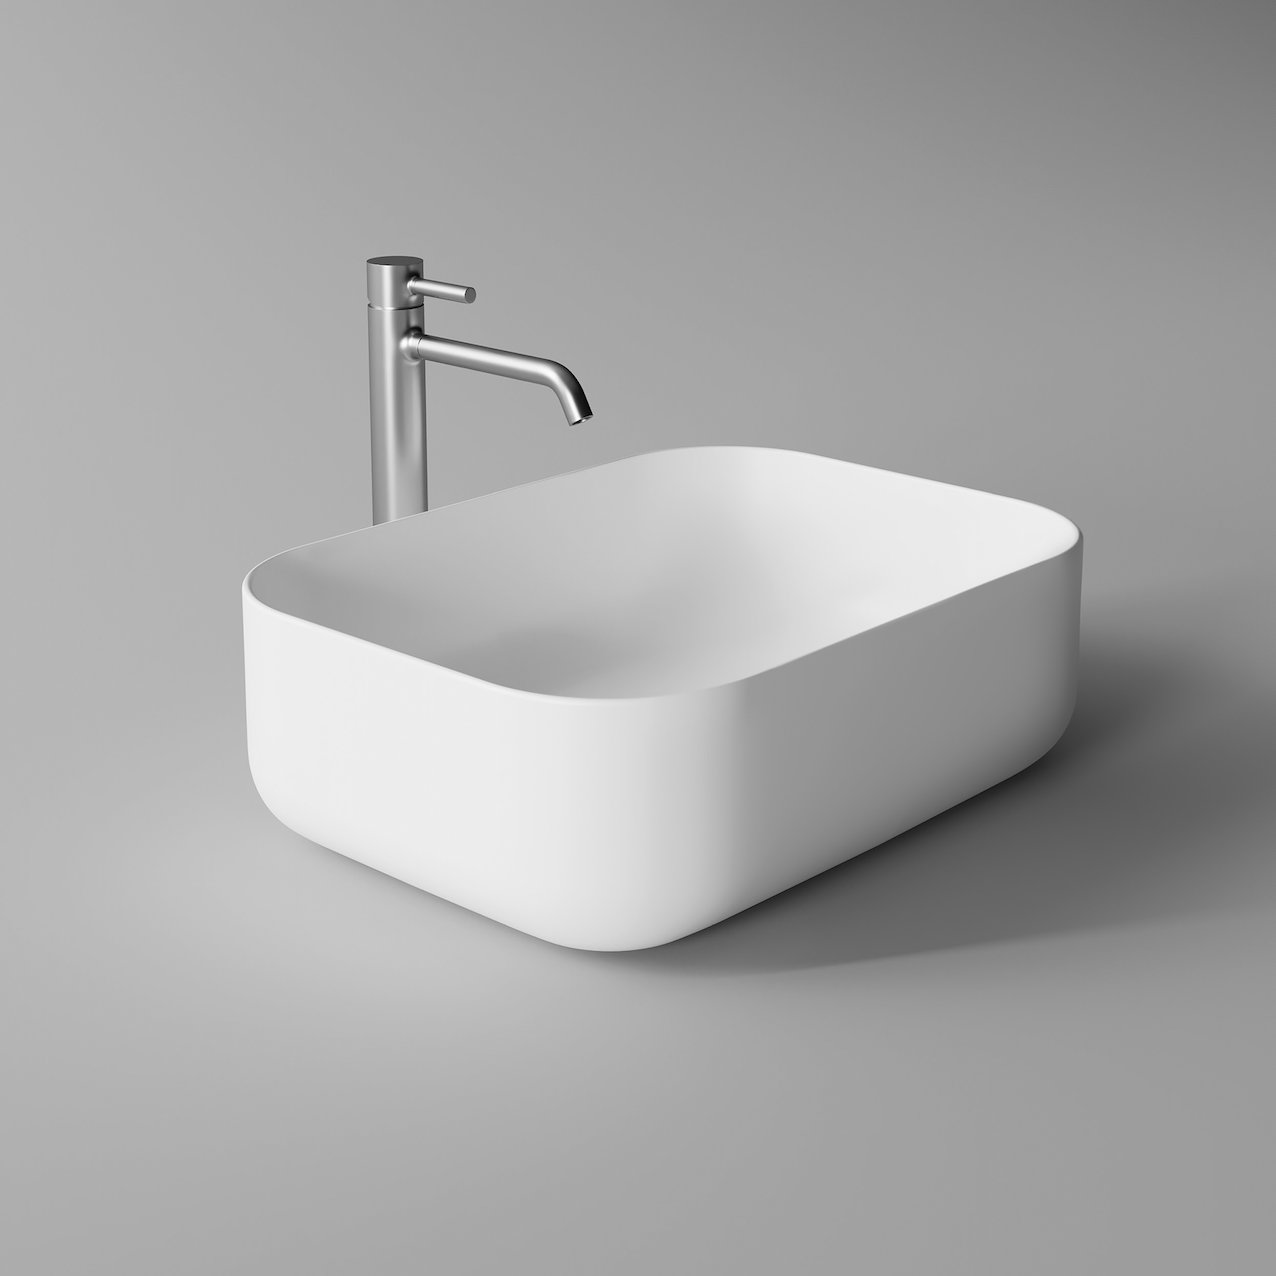 Washbasin UNICA rectangular